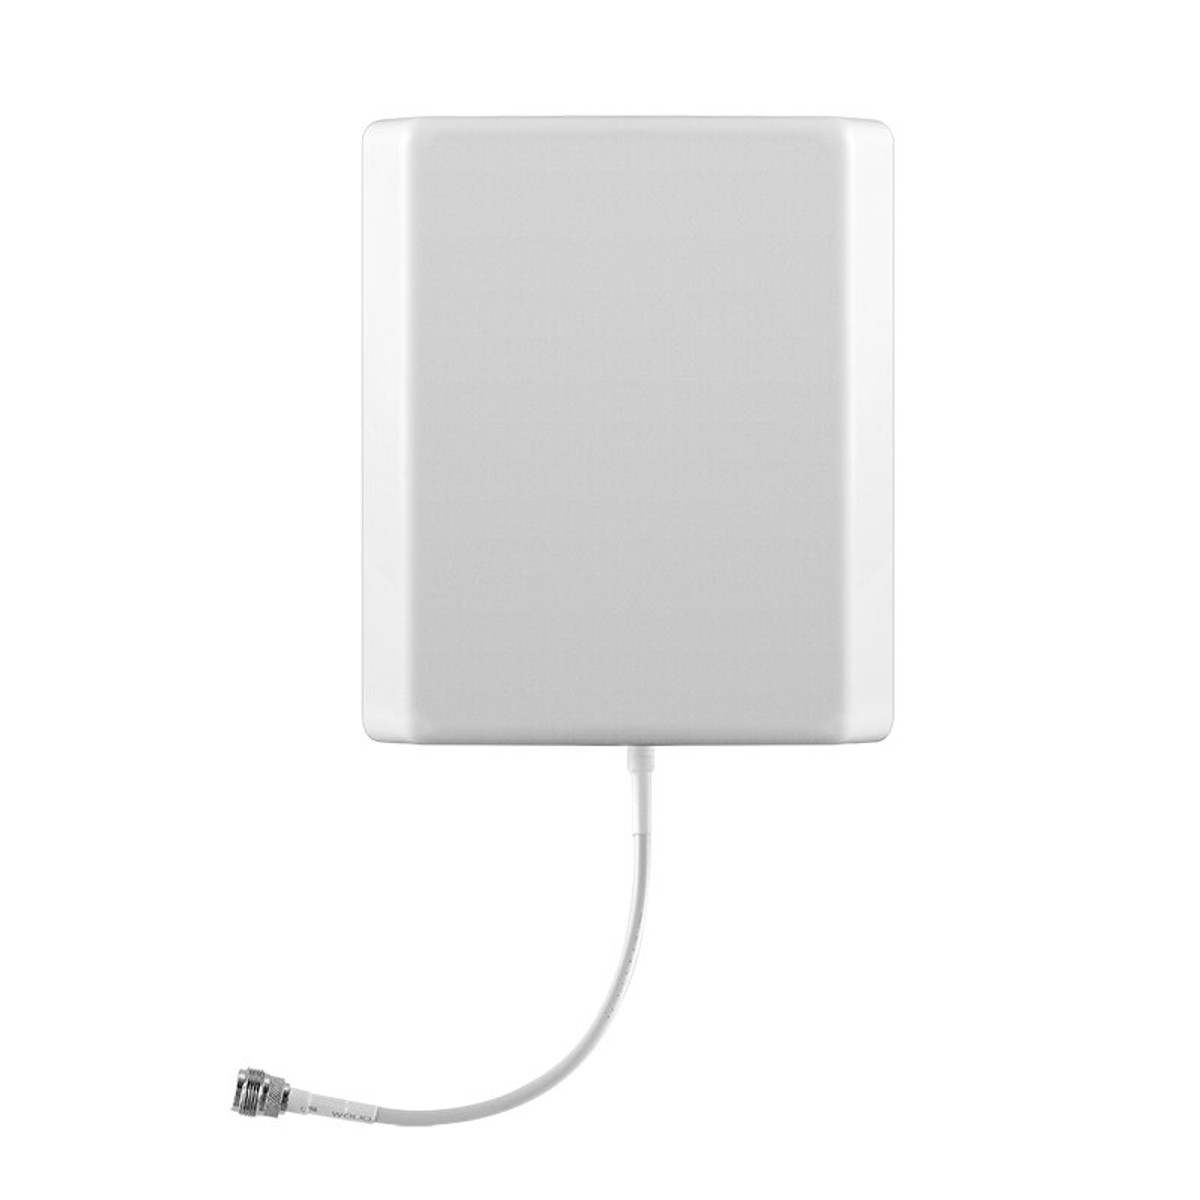 SureCall Fusion5s Signal Booster Indoor Panel Antenna